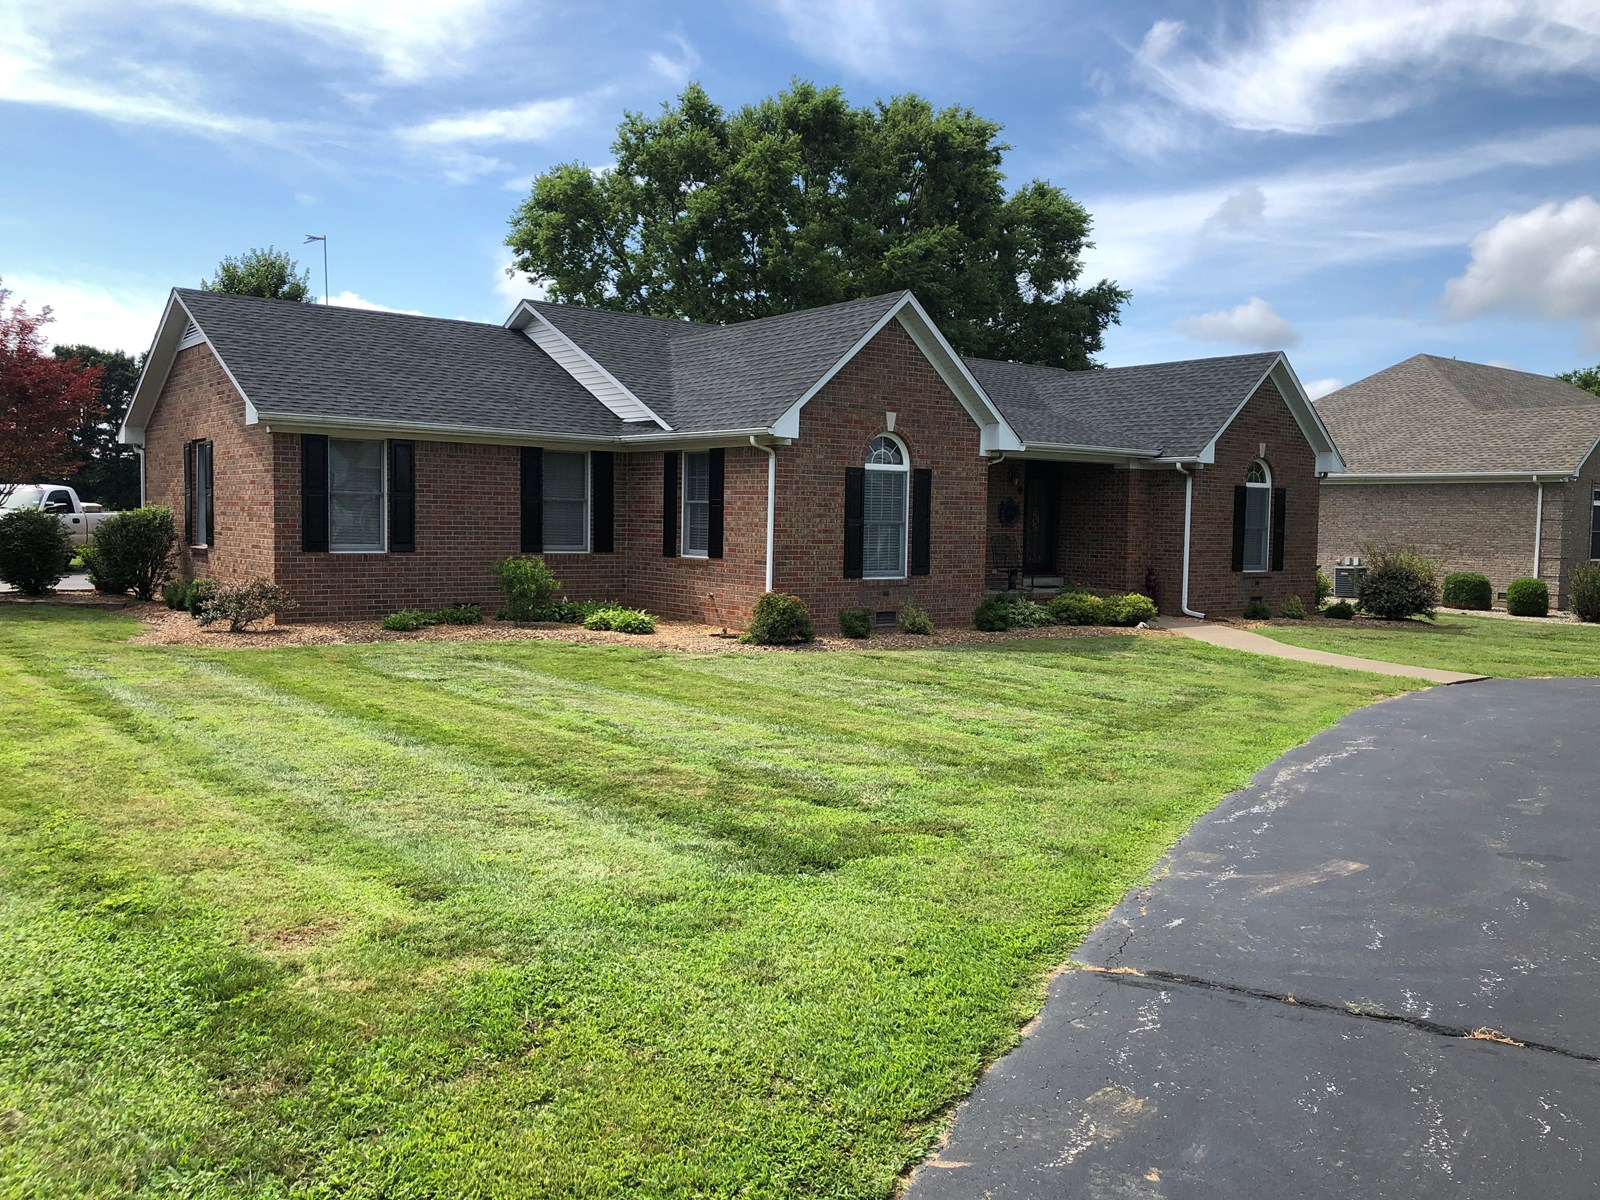 Hard to find 4 bed 3.5 bath Home for sale in Smiths Grove Ky